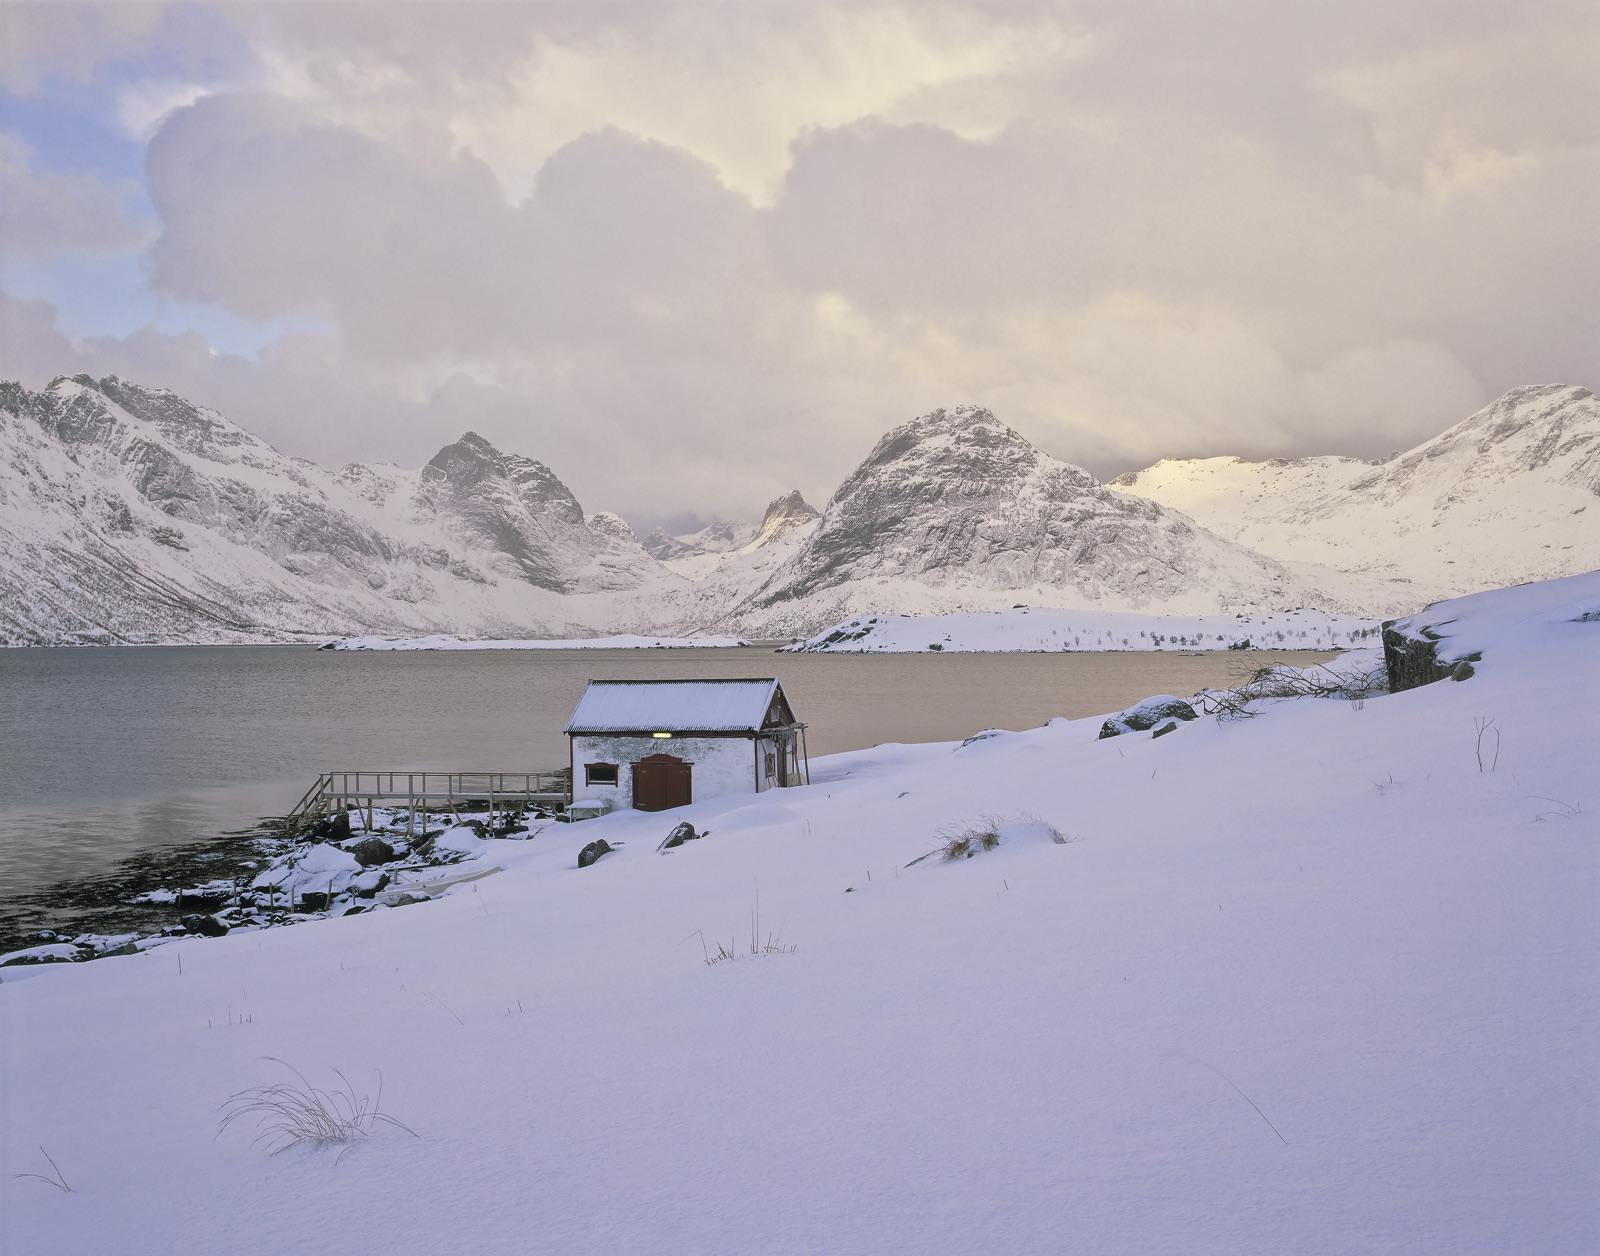 Cool Krystad, Little Krystad, Lofoten, Norway, squall, clouds, snow, hut, rorbua, reflection, fjord, photo